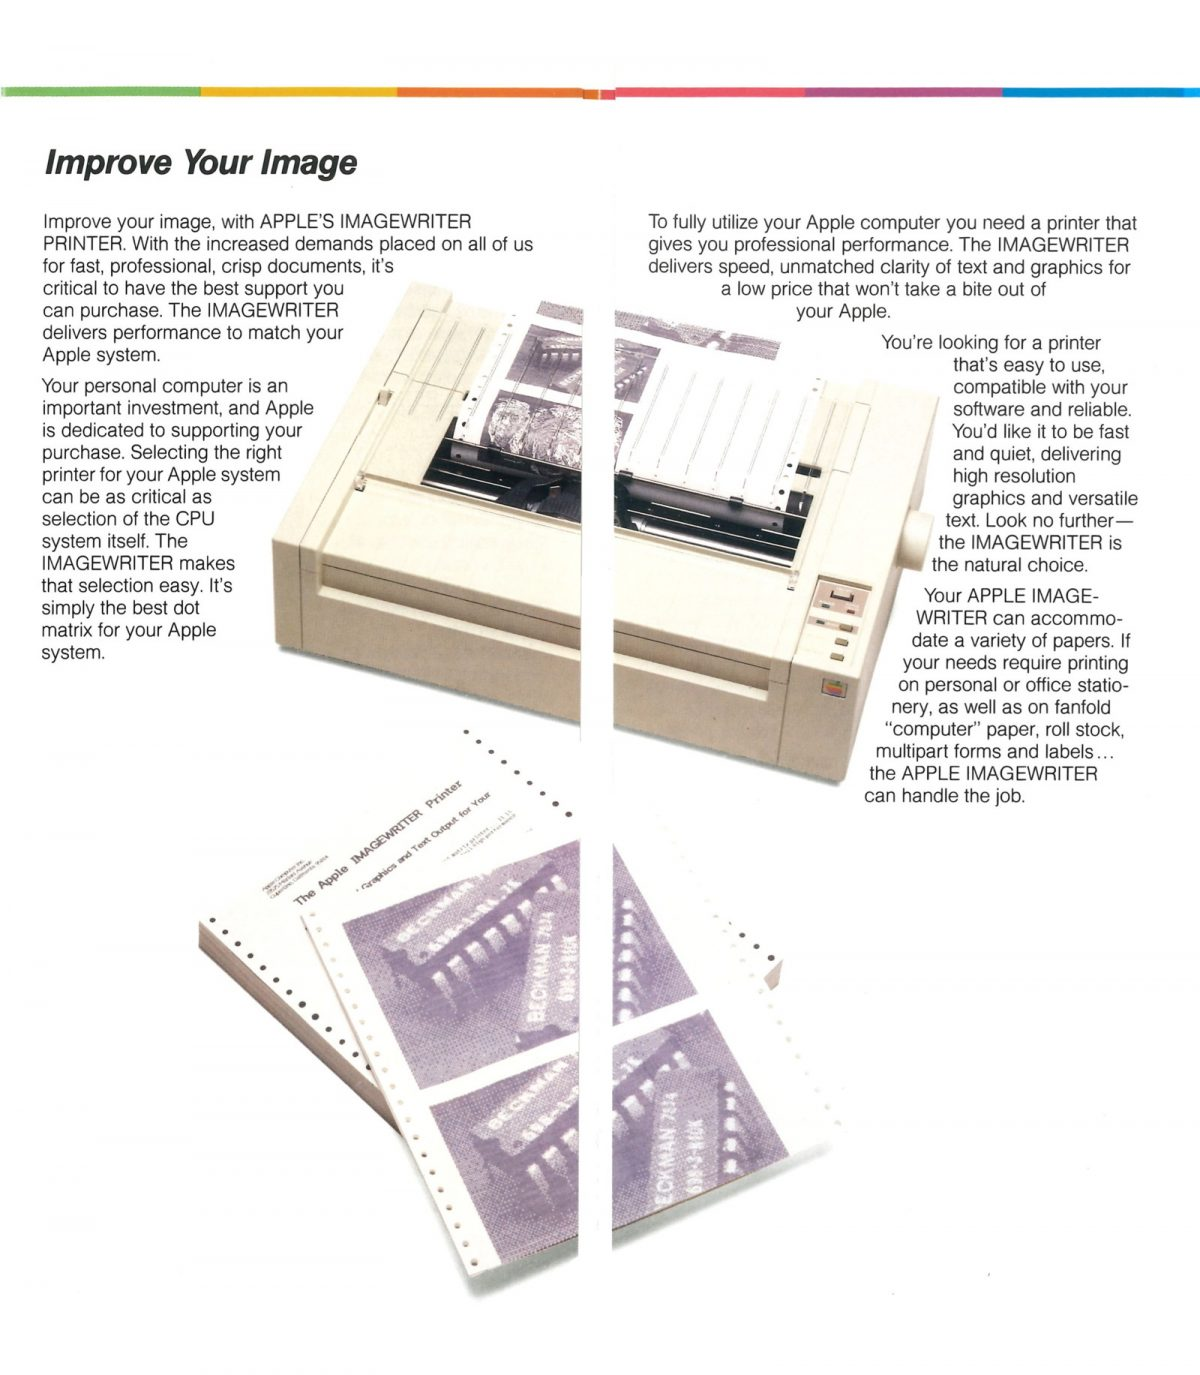 Brochure pour l'imprimante ImageWriter d'Apple